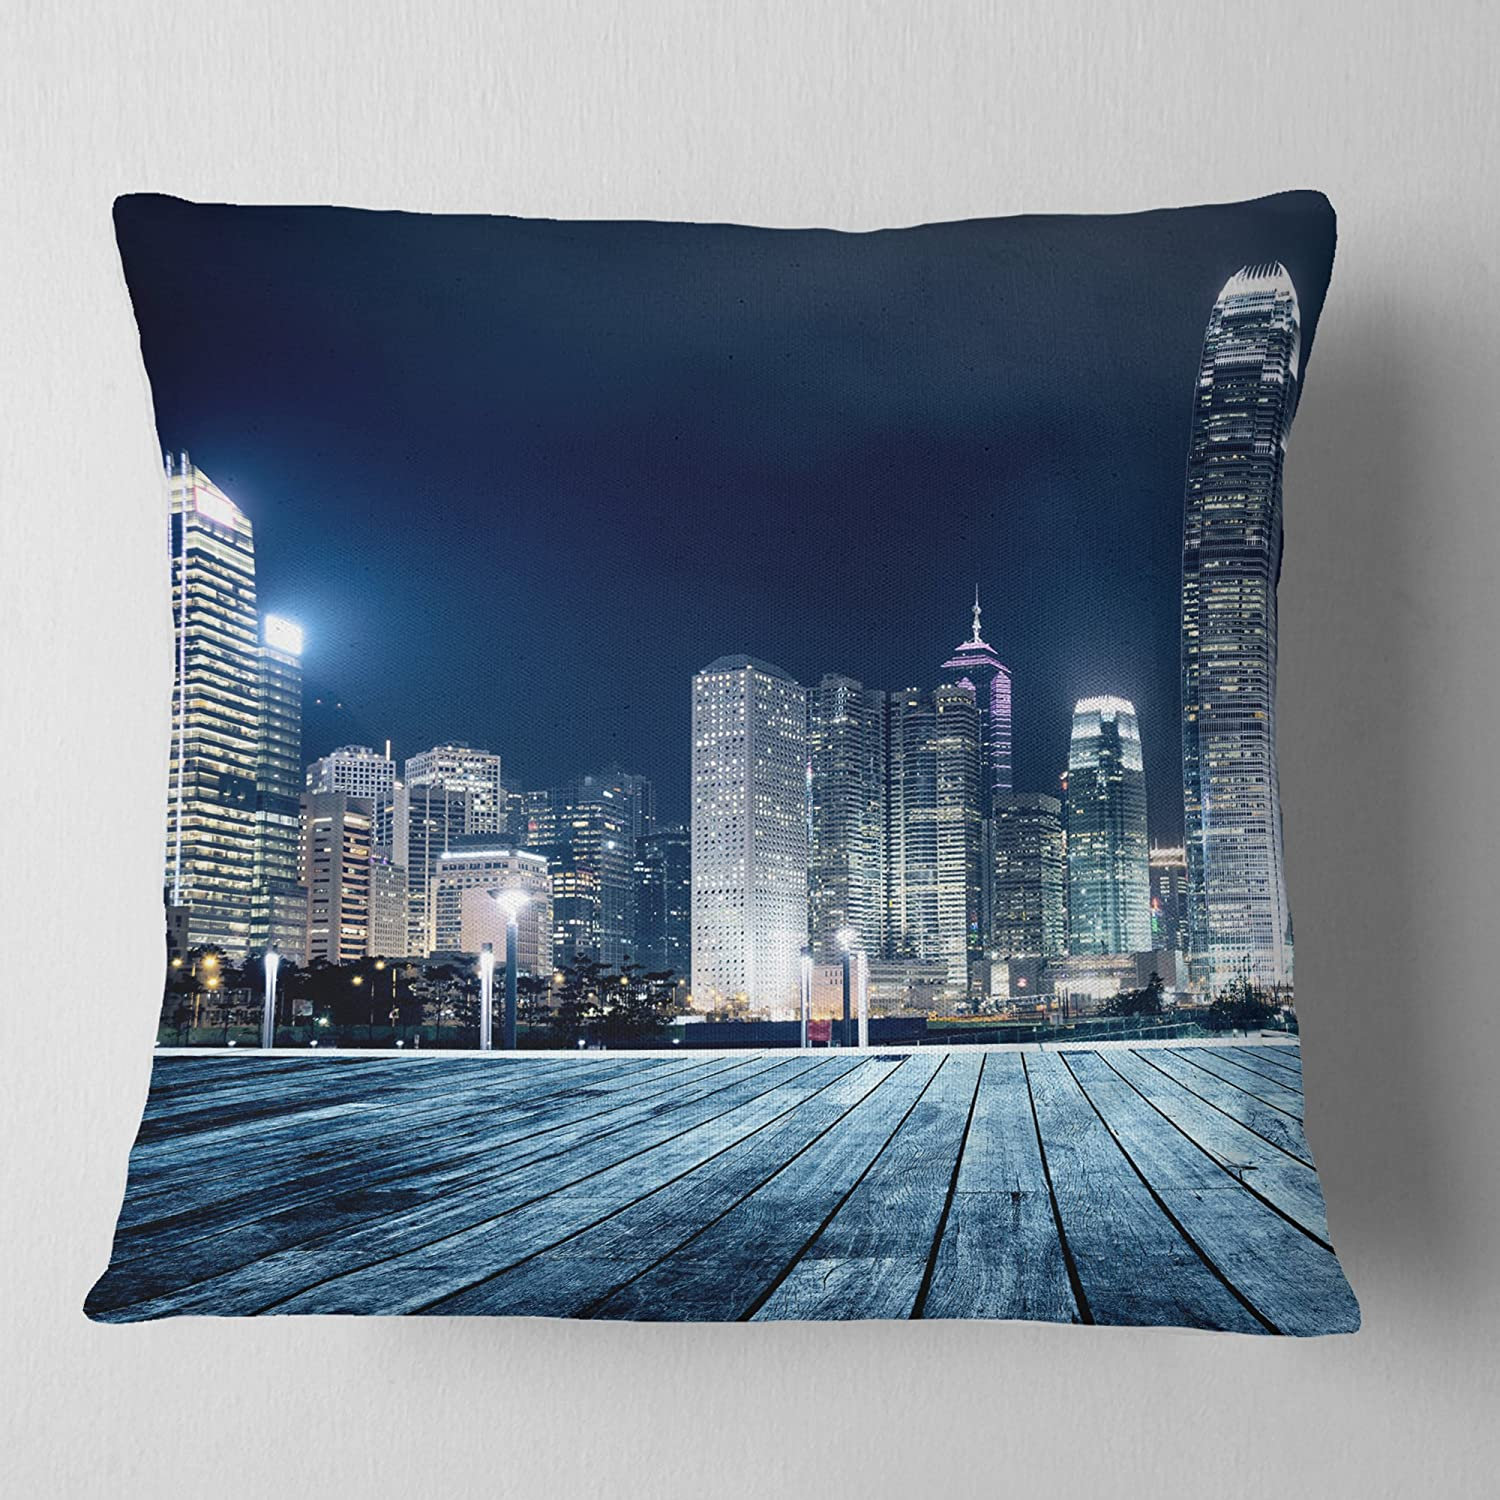 in Insert Printed On Both Side x 18 in Sofa Throw Pillow 18 in Designart CU9889-18-18 Blue Hong Kong City Skyline Cityscape Cushion Cover for Living Room